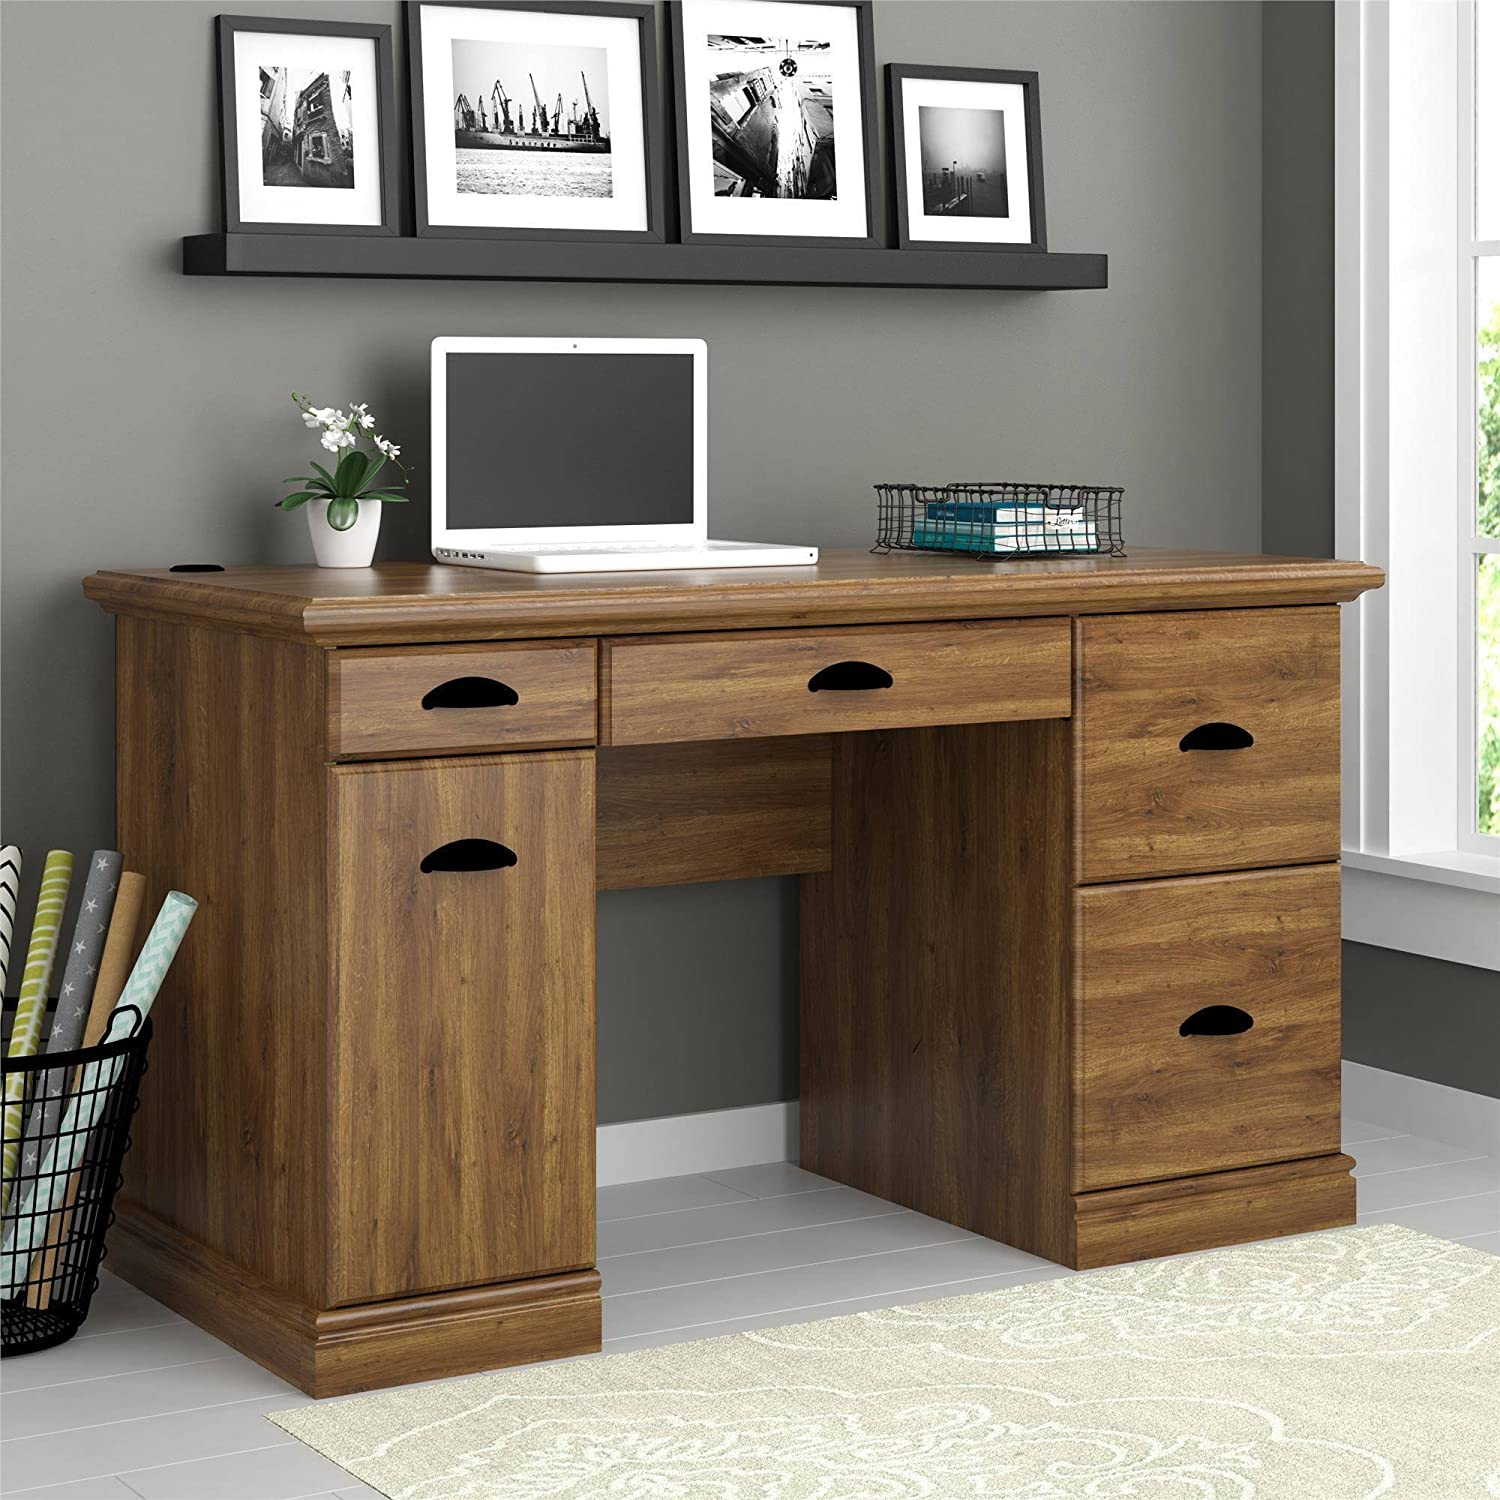 Elegant Wooden Desk in Classic Vintage Design with Multiple Storage Drawers and Trays - Large Workstation - Sophisticated